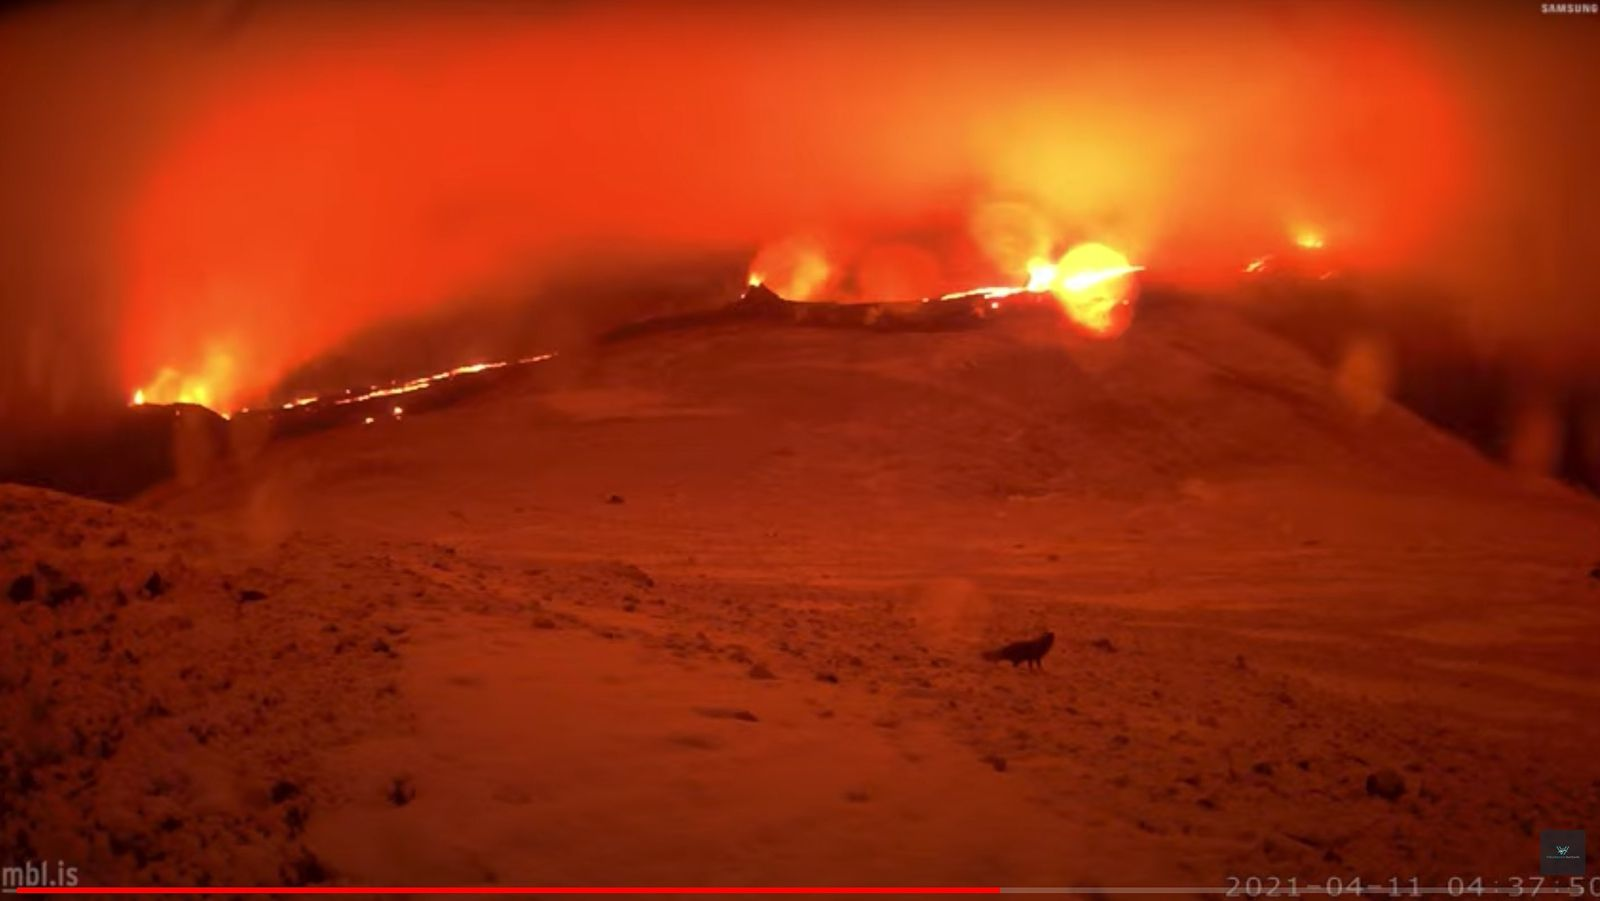 Reykjanes Peninsula - the 4 eruptive sites active on 04.11.2021 / 04:37 - mbls webcam - note the presence of a fox which remains at a distance from the lava - a click to enlarge